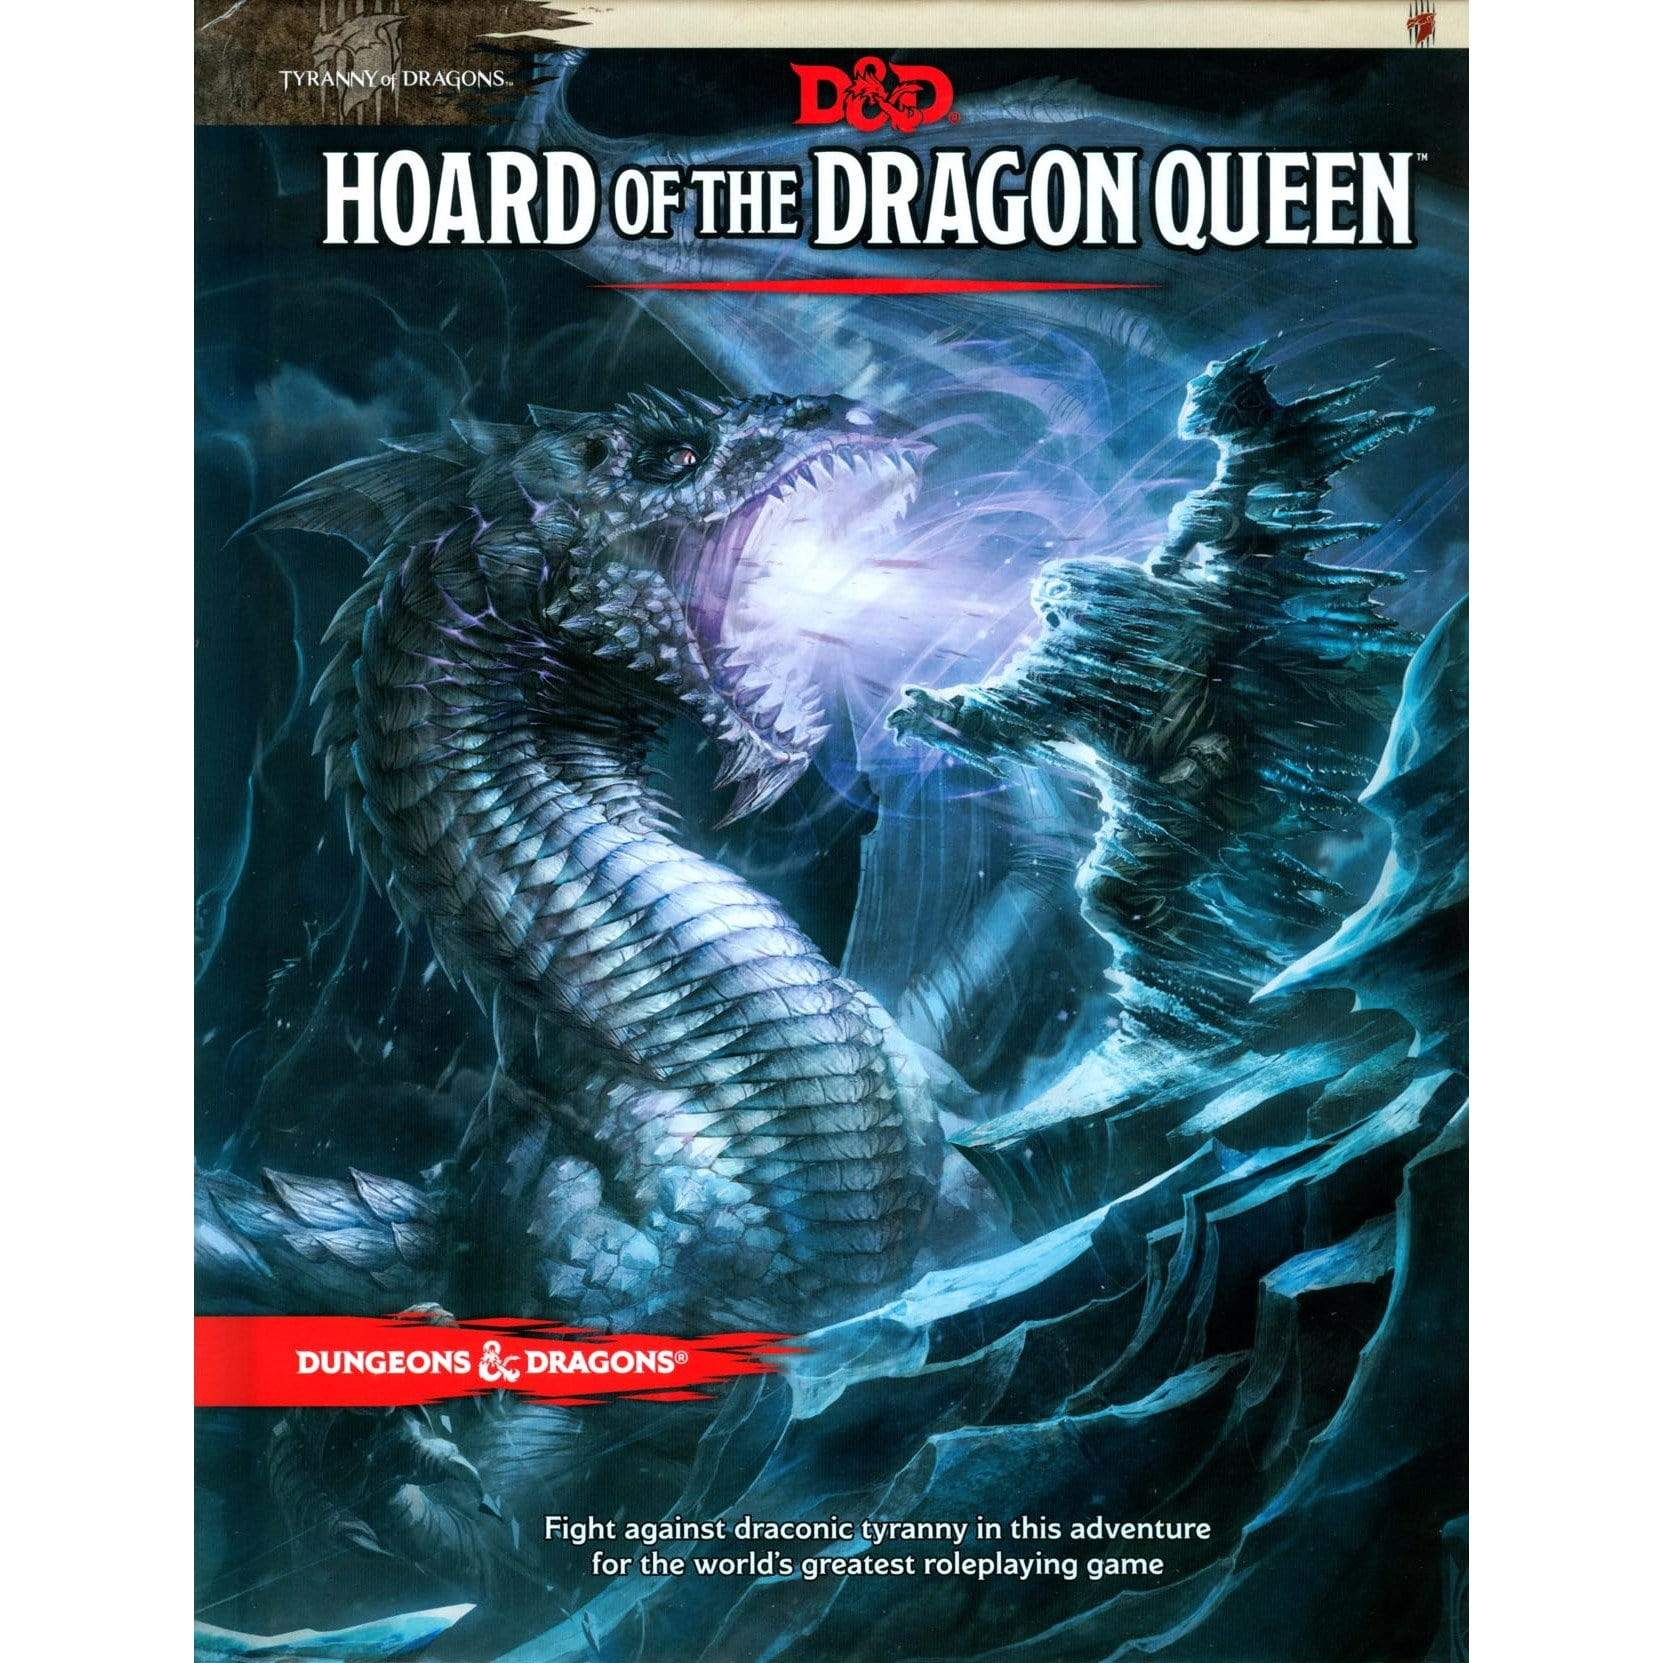 D&D: Hoard Of The Dragon Queen Wizards of the Coast Board Games